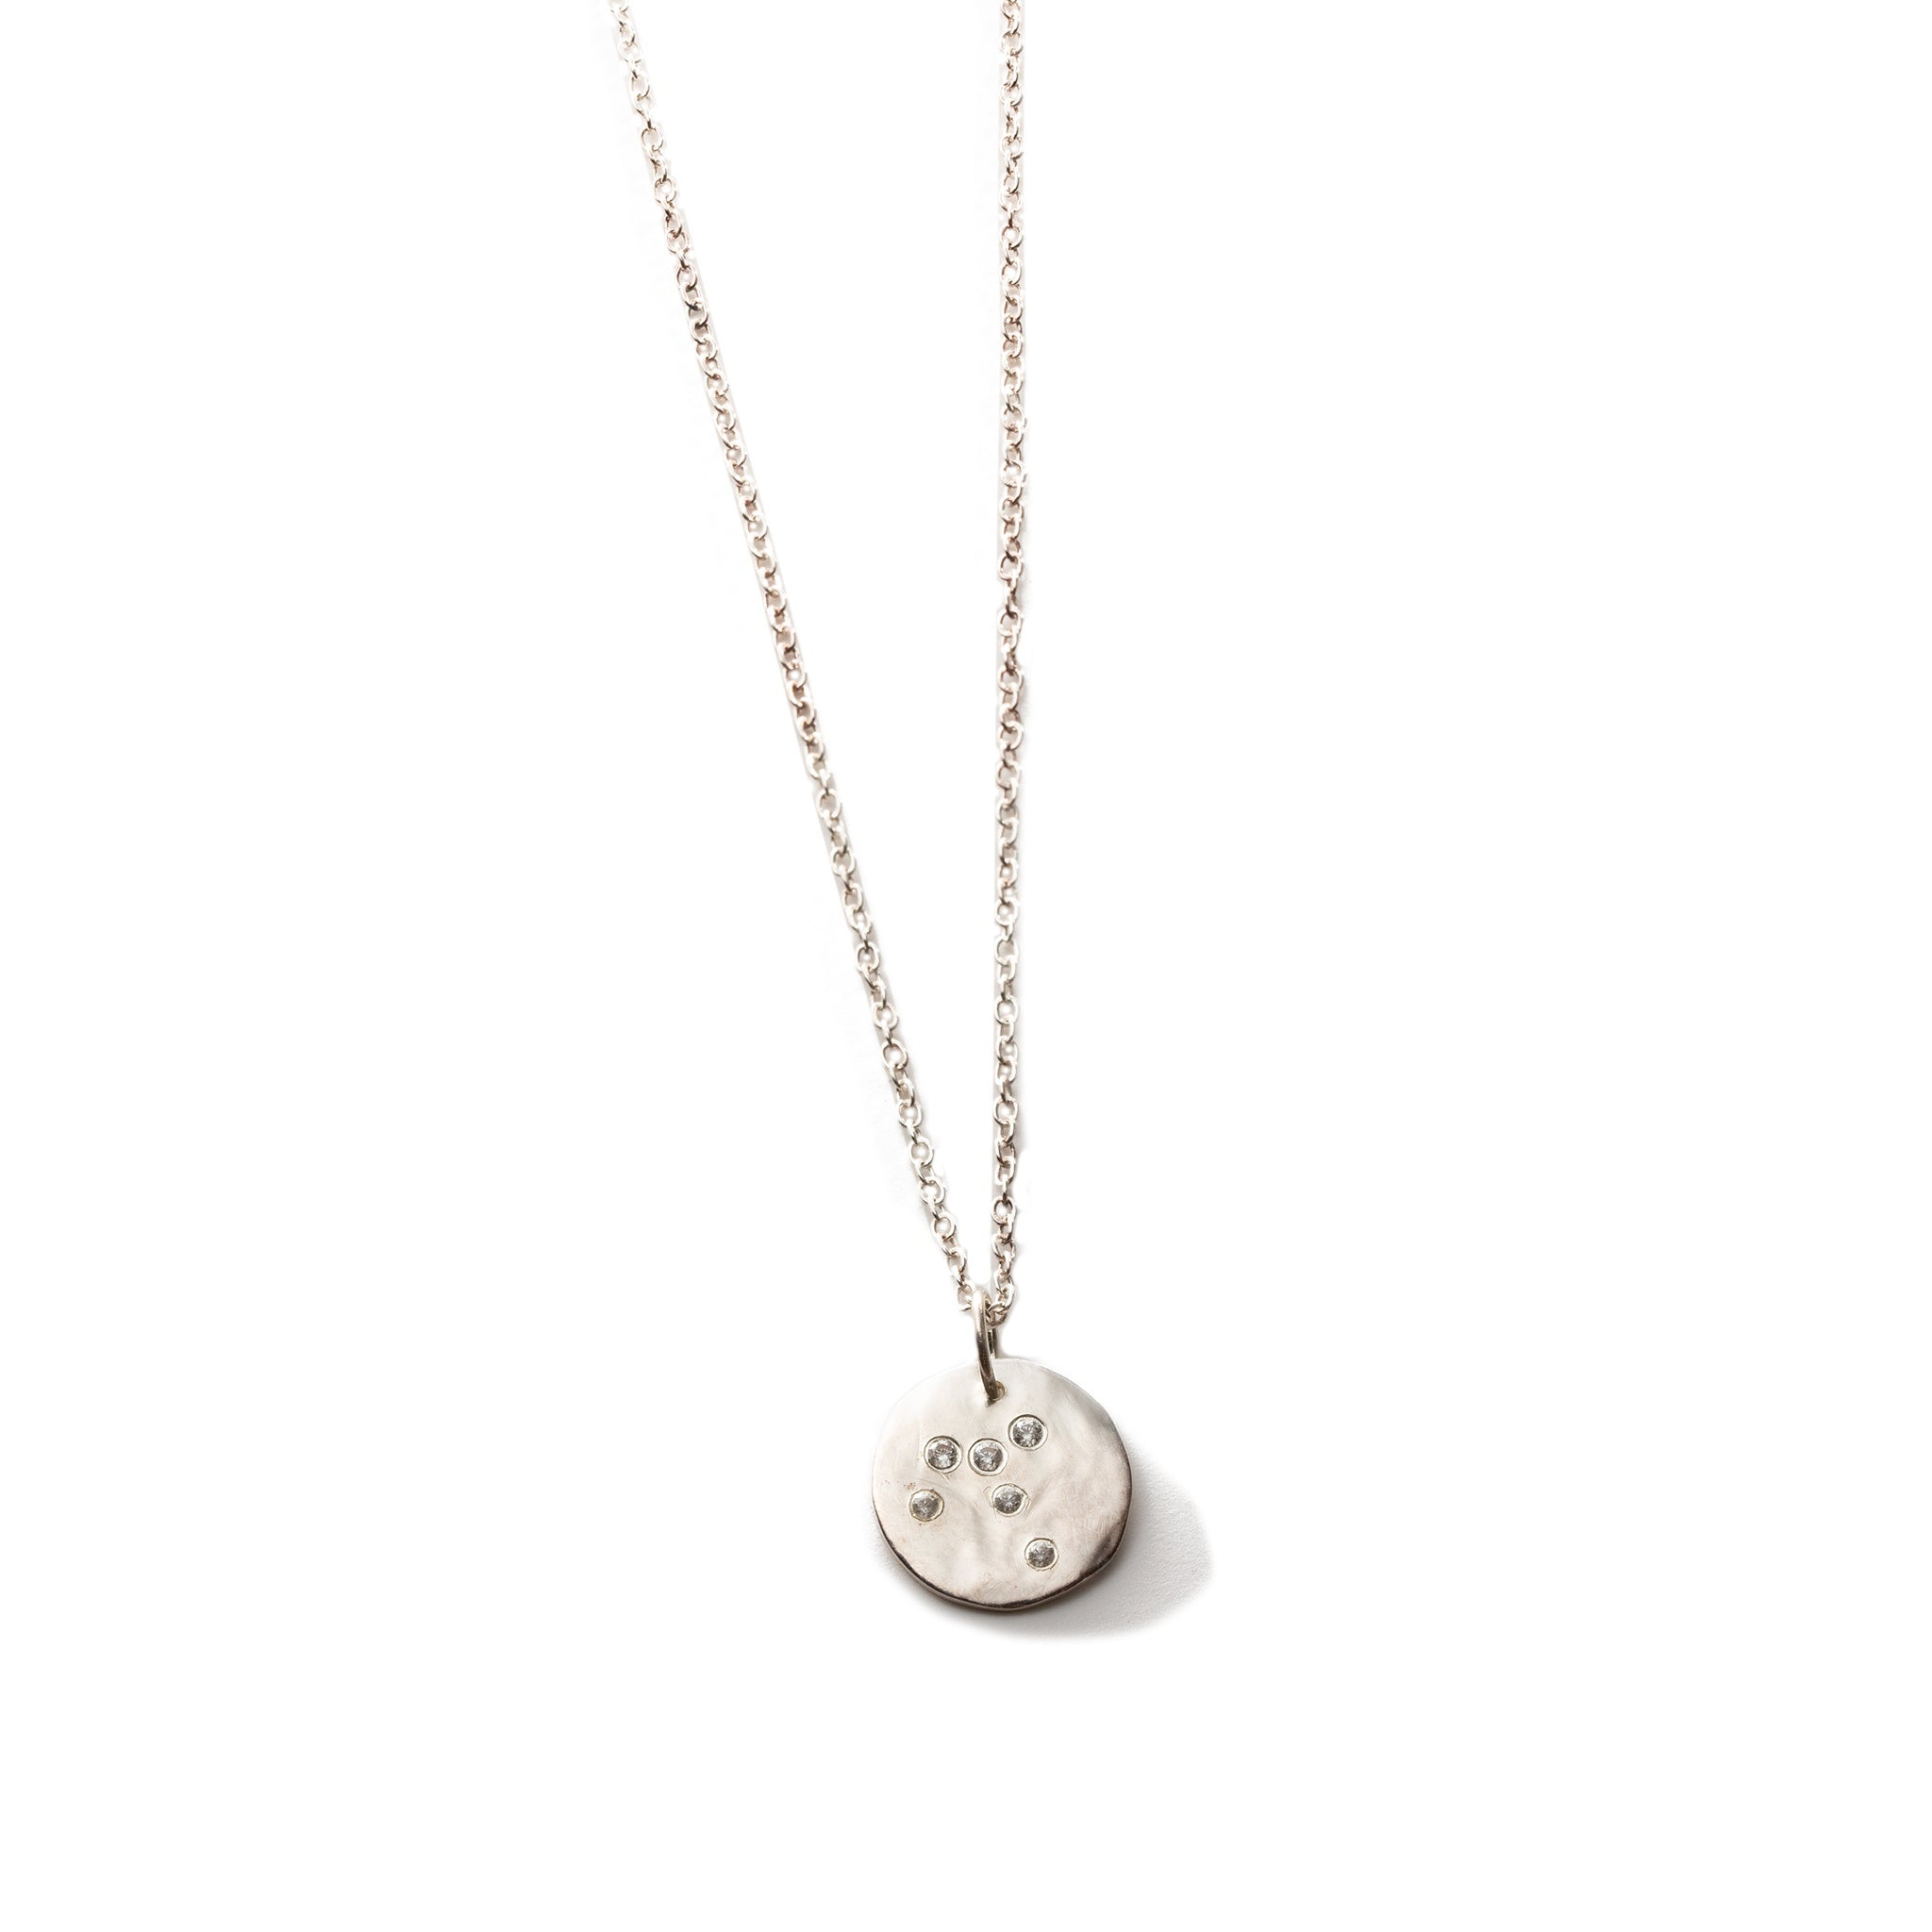 Small Silver Constellation Pendant Necklace